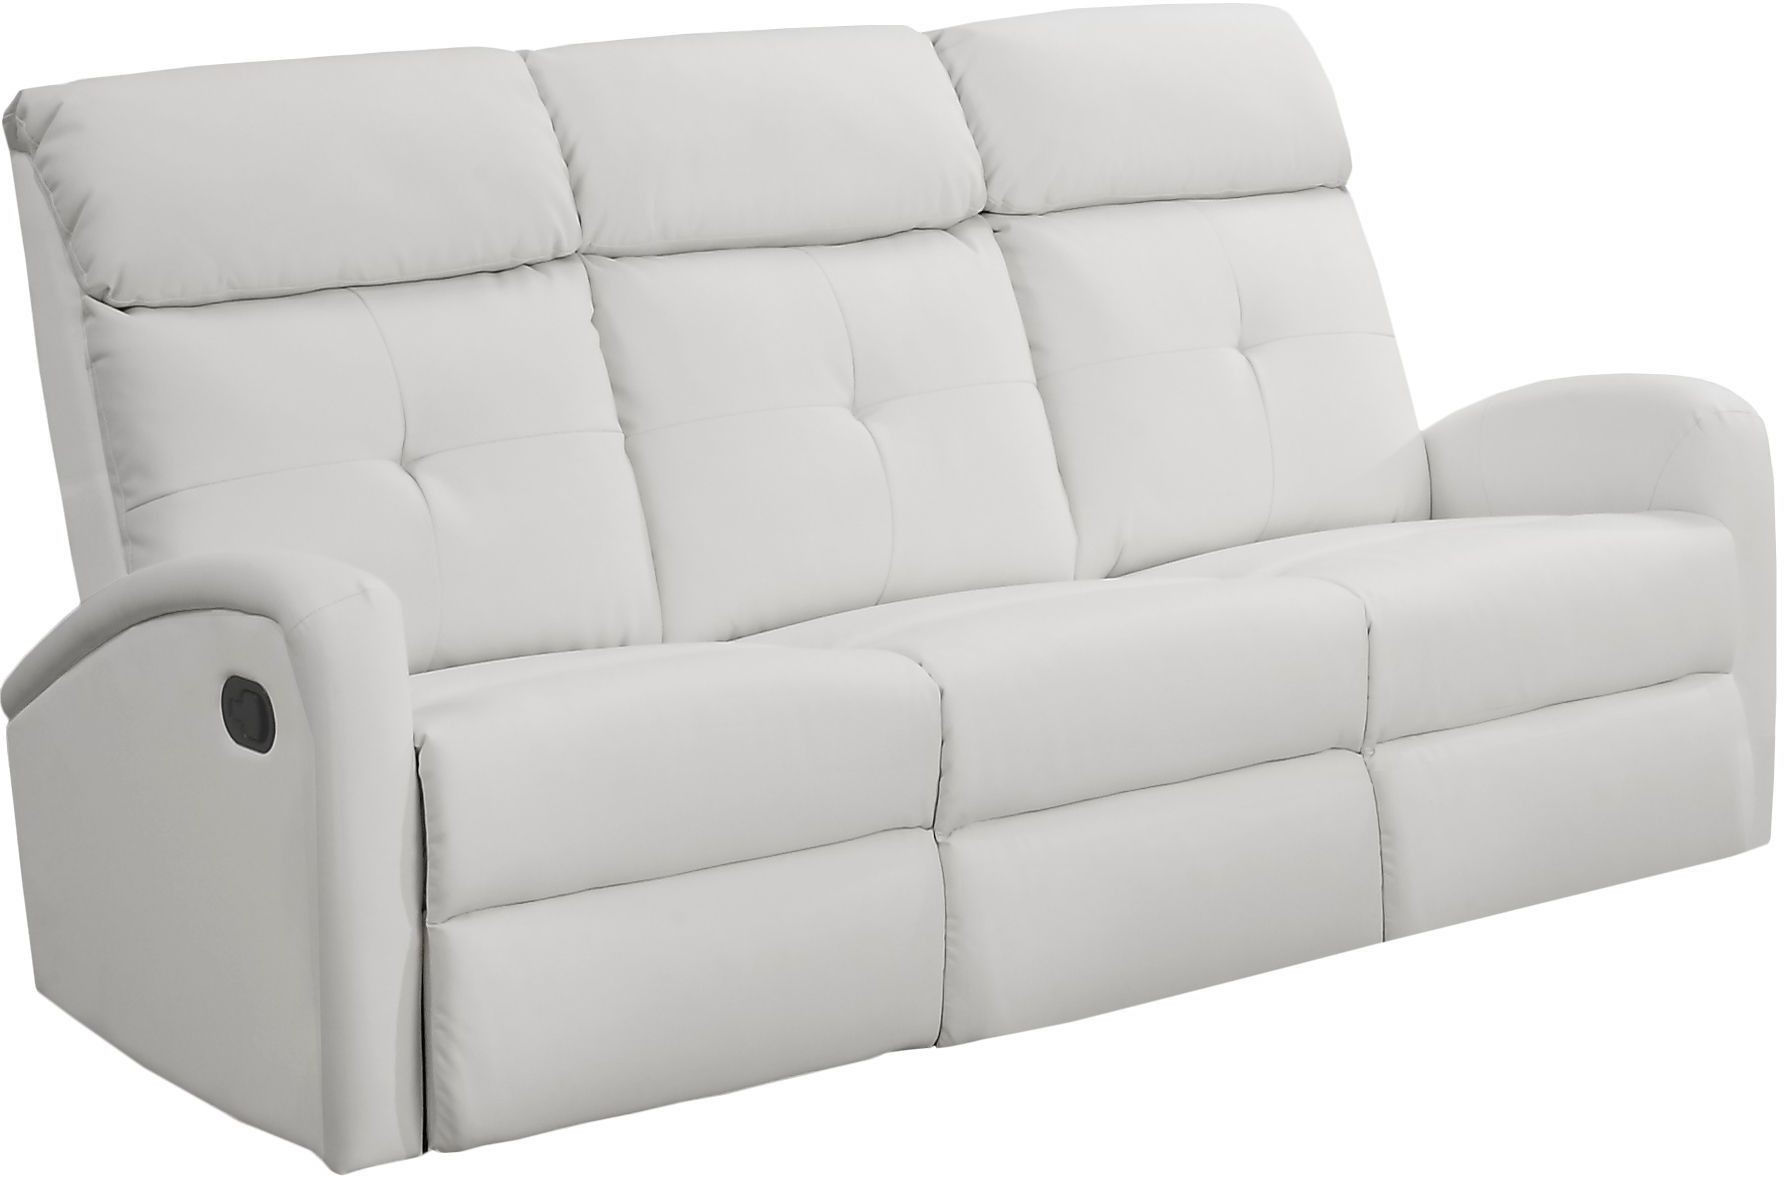 Best And Newest Bonded Leather All In One Sectional Sofas With Ottoman And 2 Pillows Brown For 88Wh 3 White Bonded Leather Reclining Sofa From Monarch (View 25 of 25)